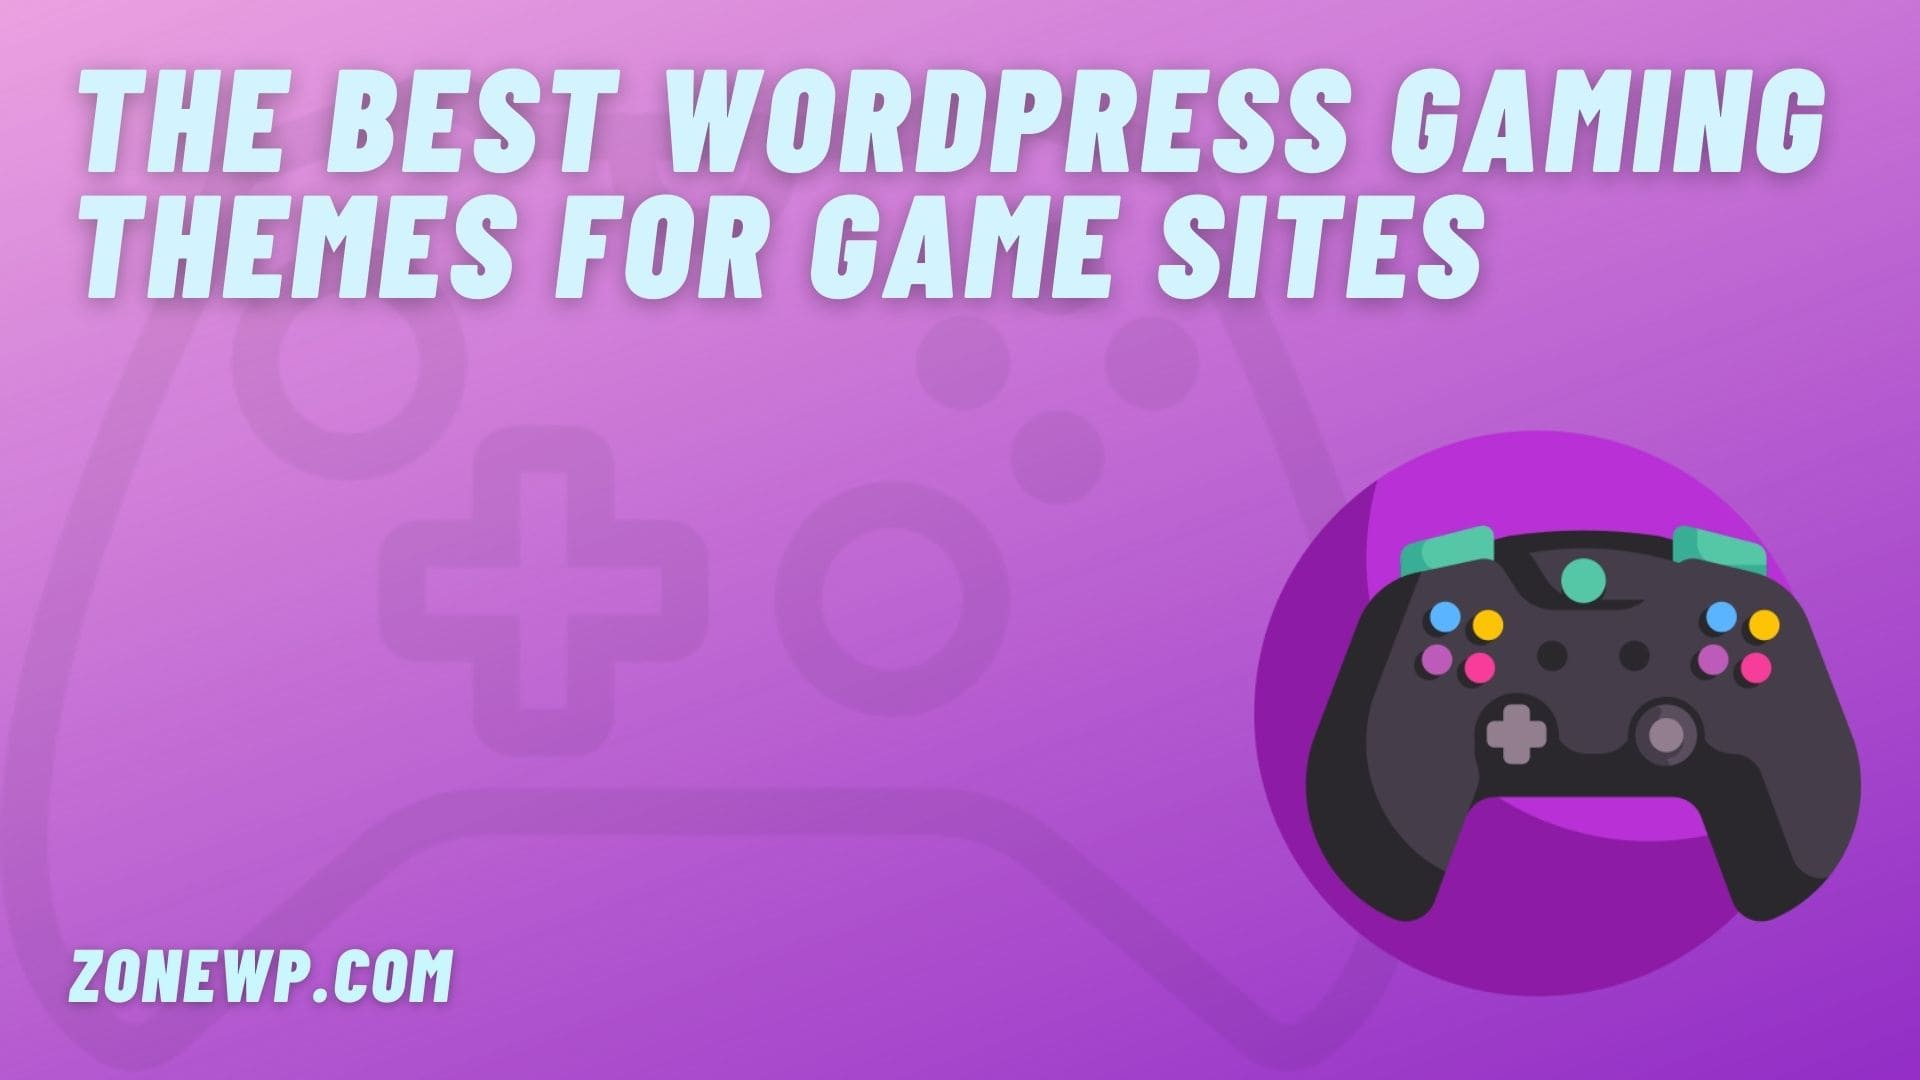 The Best WordPress Gaming Themes for Game Sites